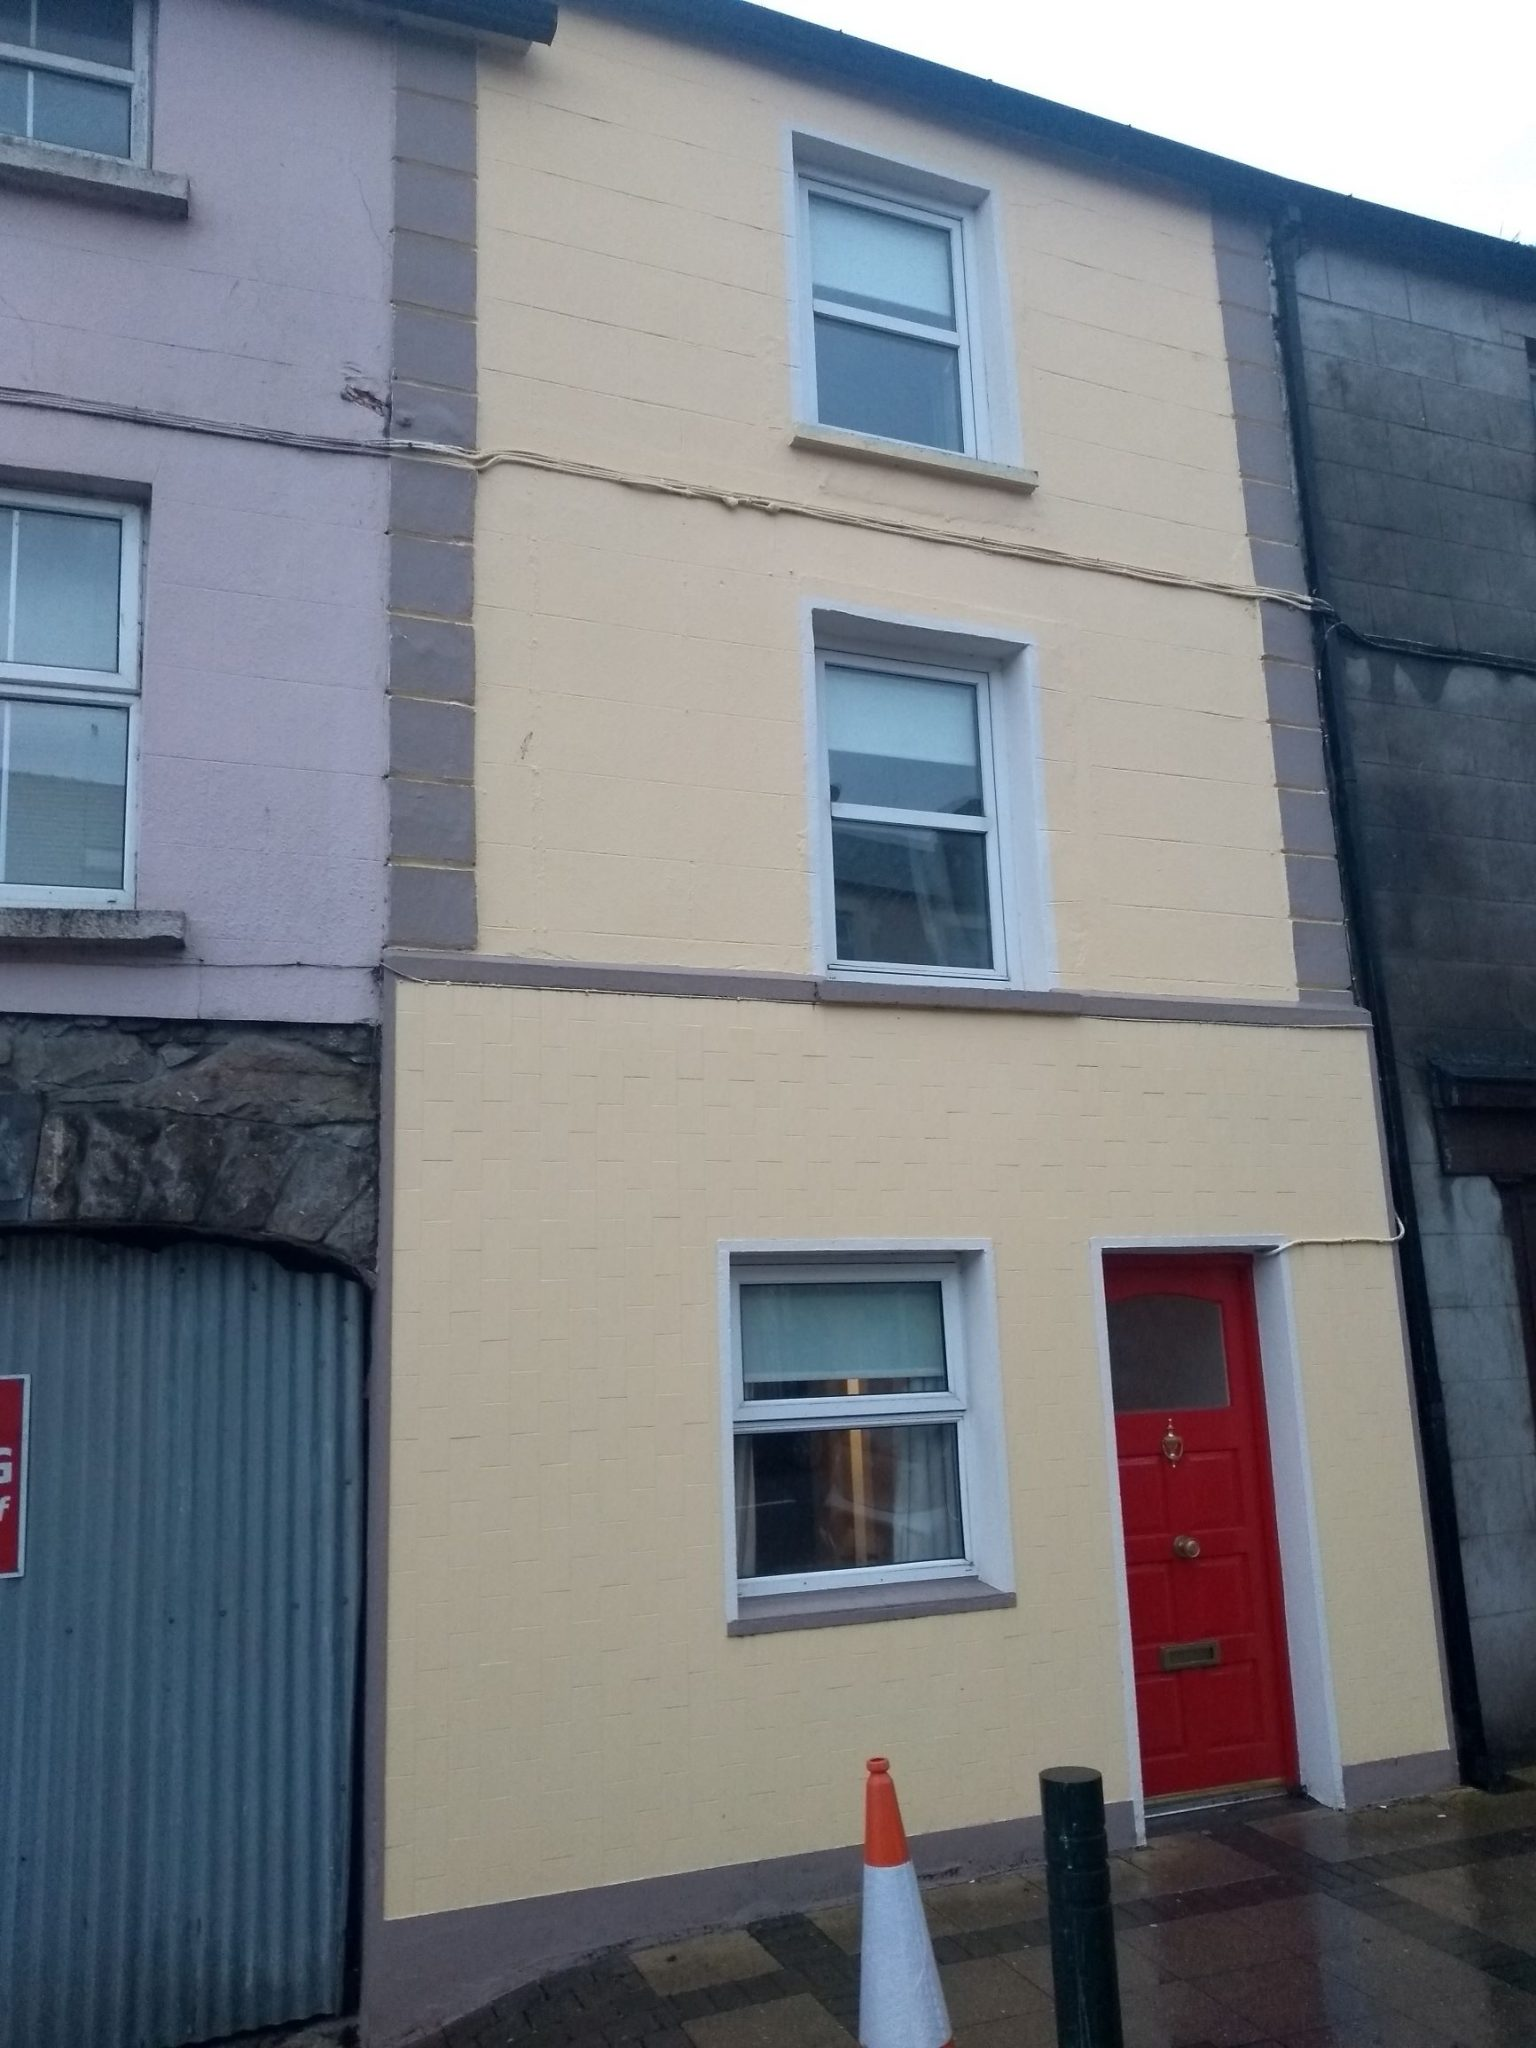 4 Bedroom Townhouse To Let